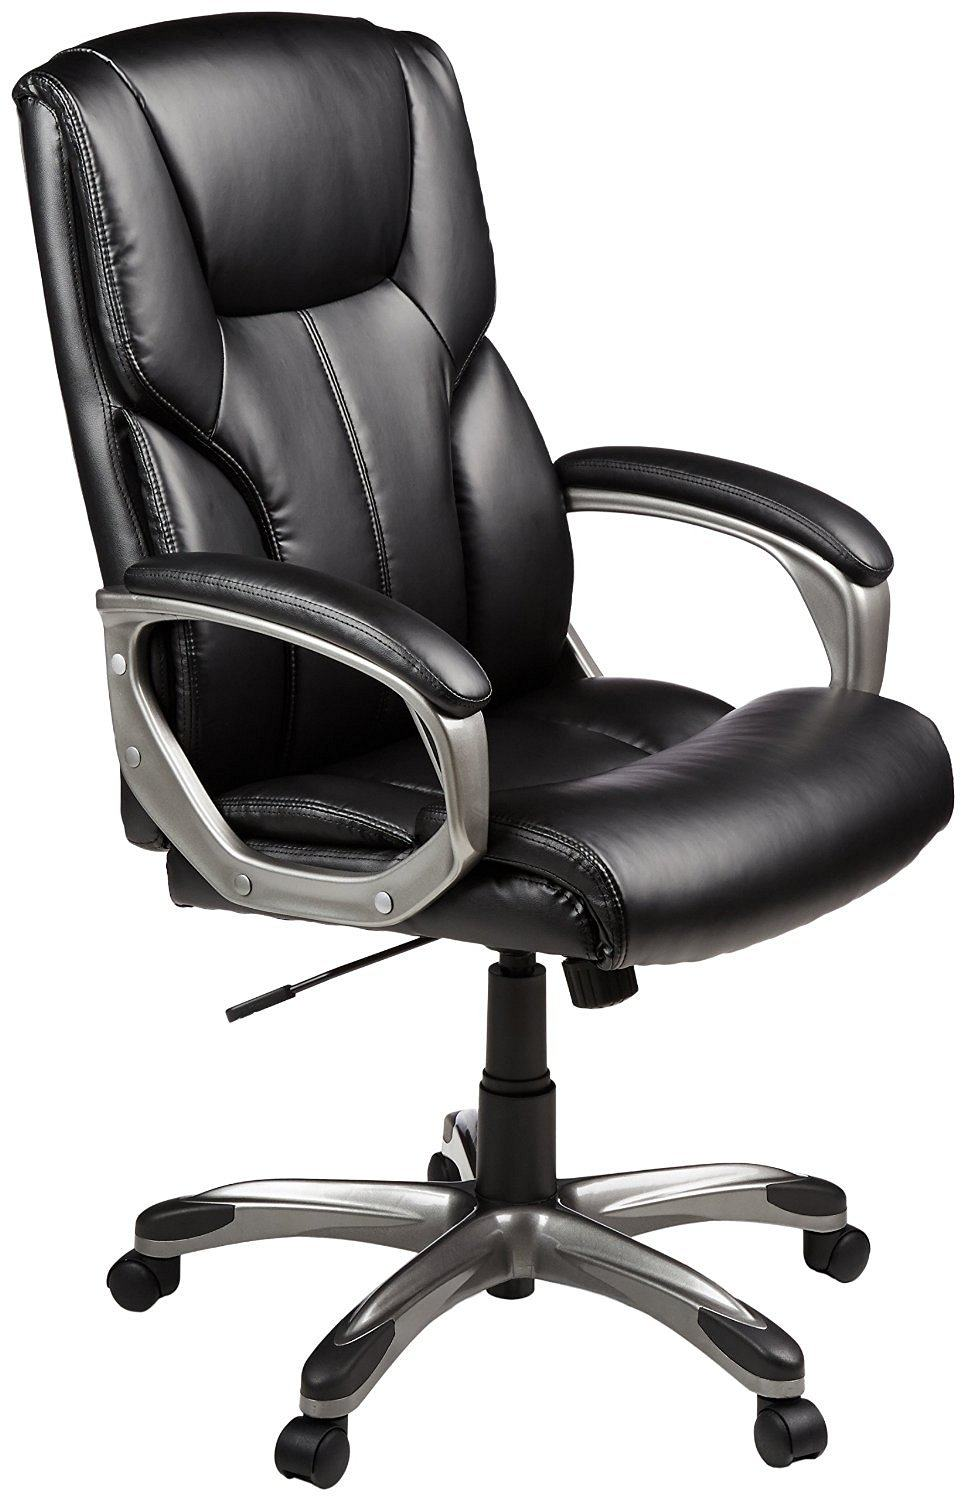 best office chair under